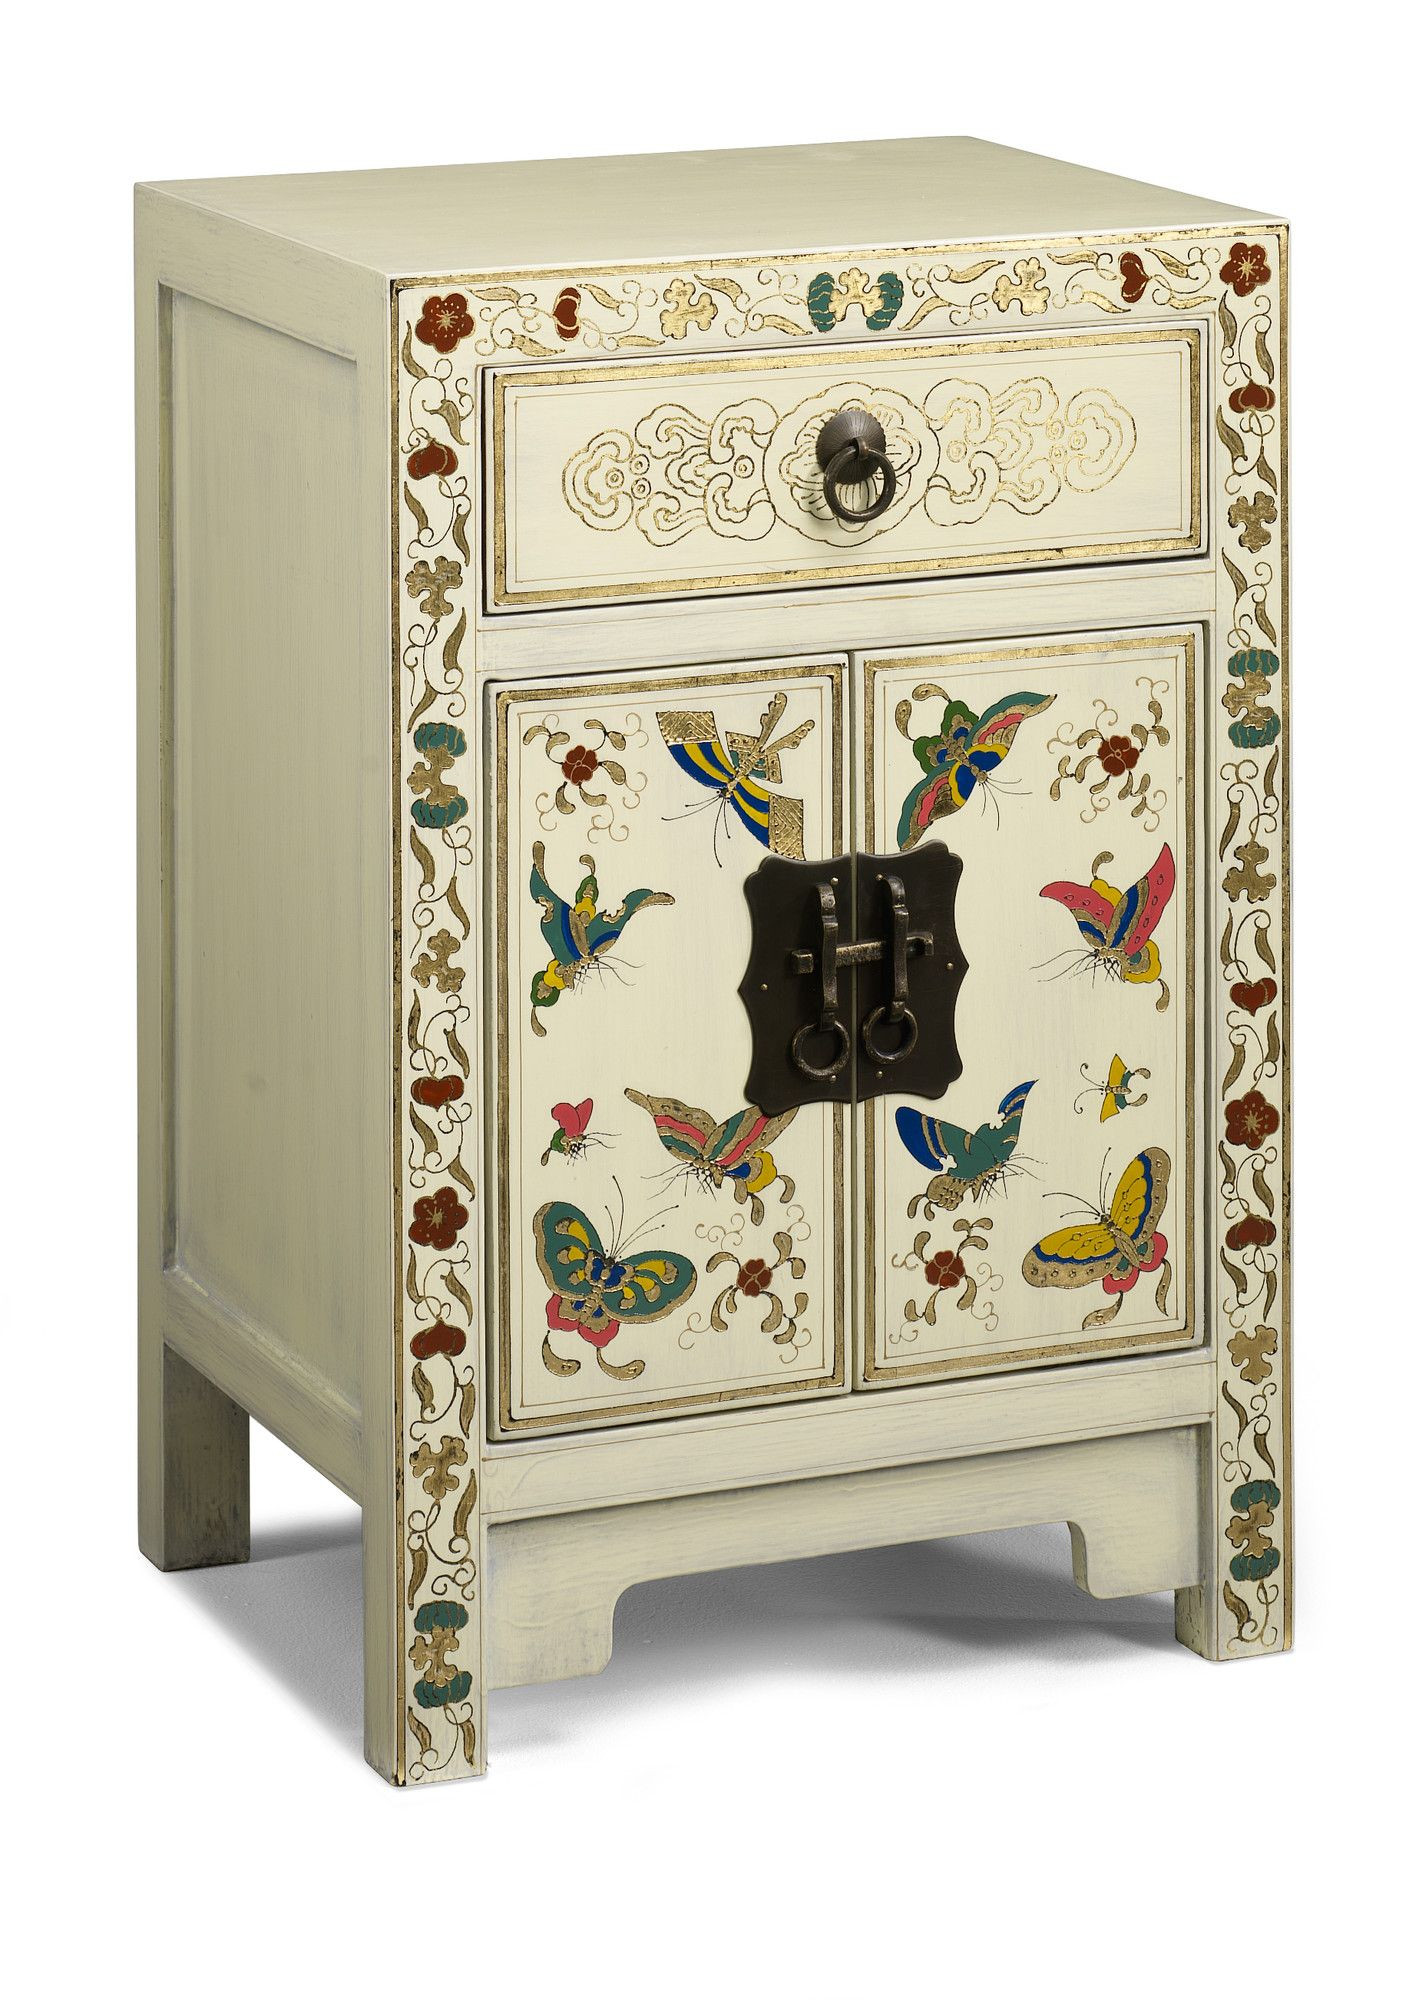 1 Drawer Bedside Table Bedside Cabinet Painted Furniture Chinese Furniture